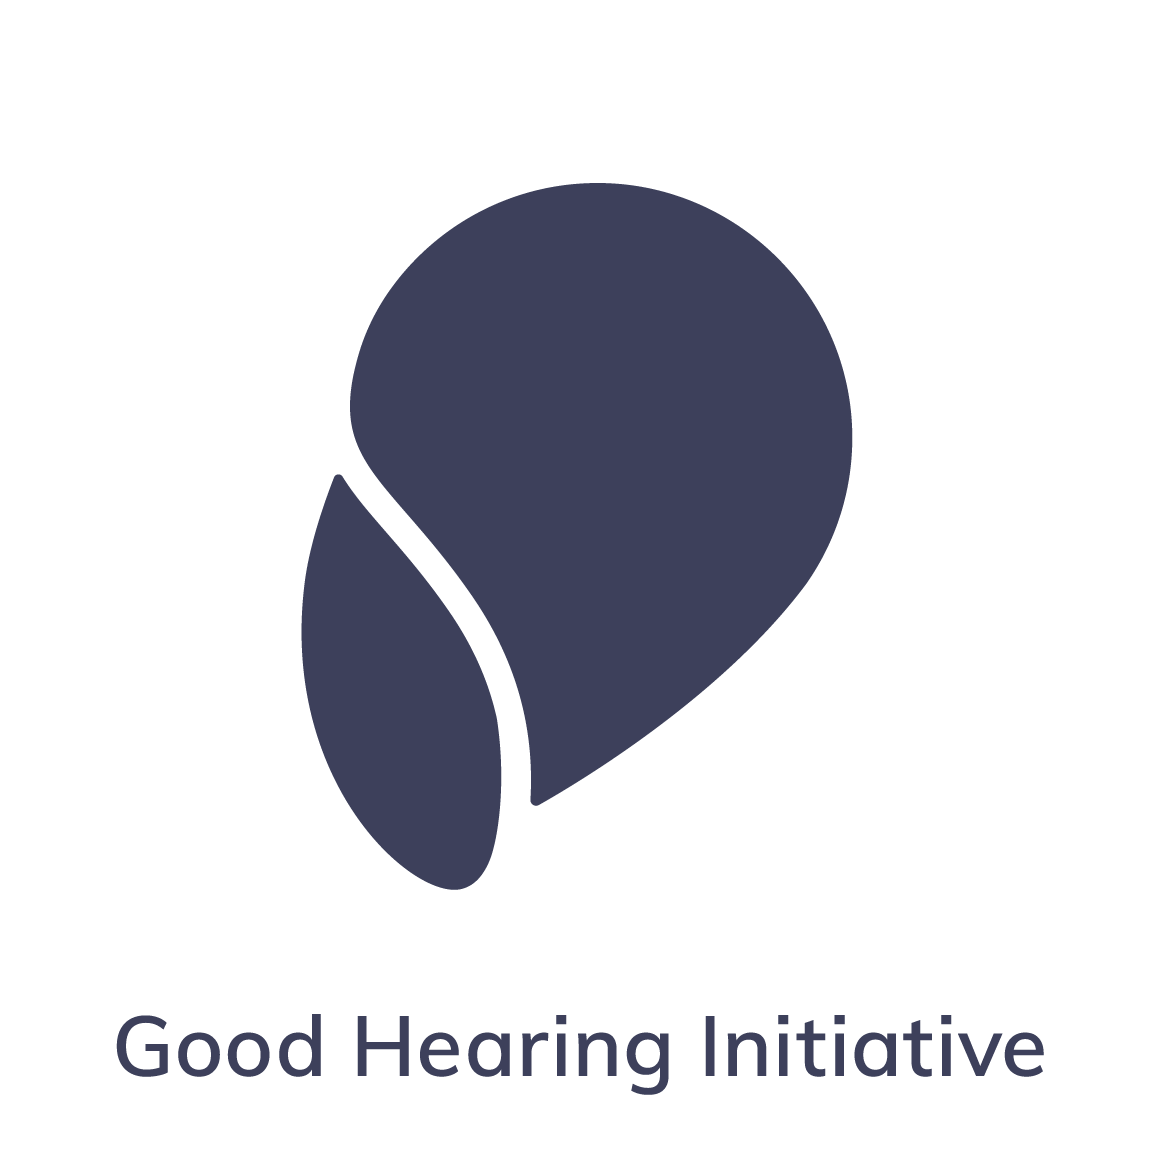 Good Hearing Initiative